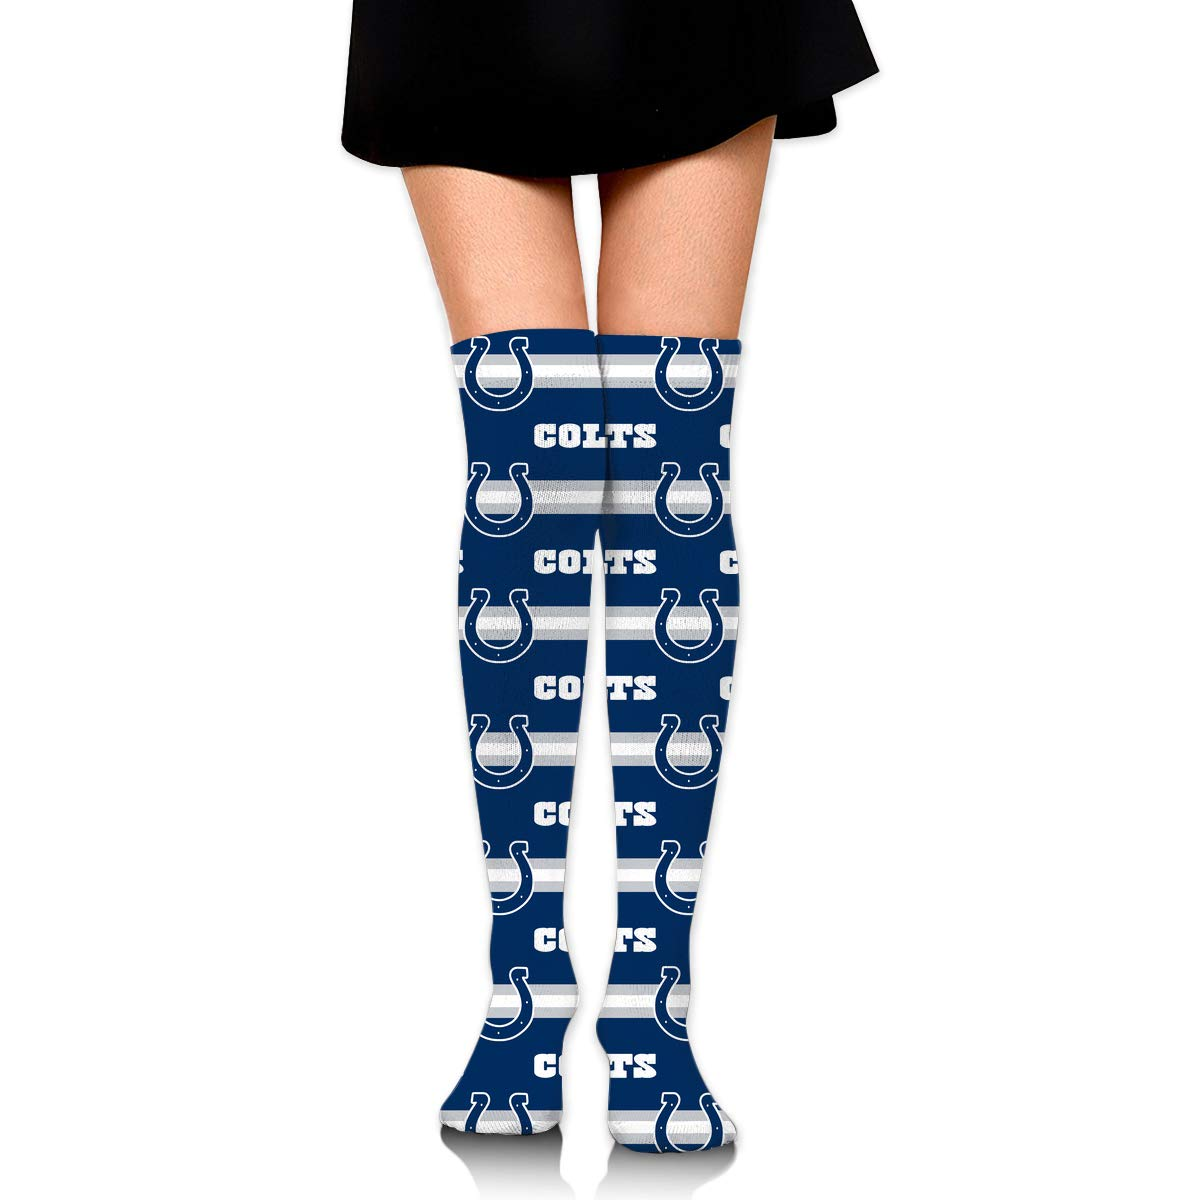 Sorcerer Custom Girls Over Knee High Boot Stockings Leg Warmers Indianapolis Colts Women's Polyester Thigh High Socks Gift by Sorcerer